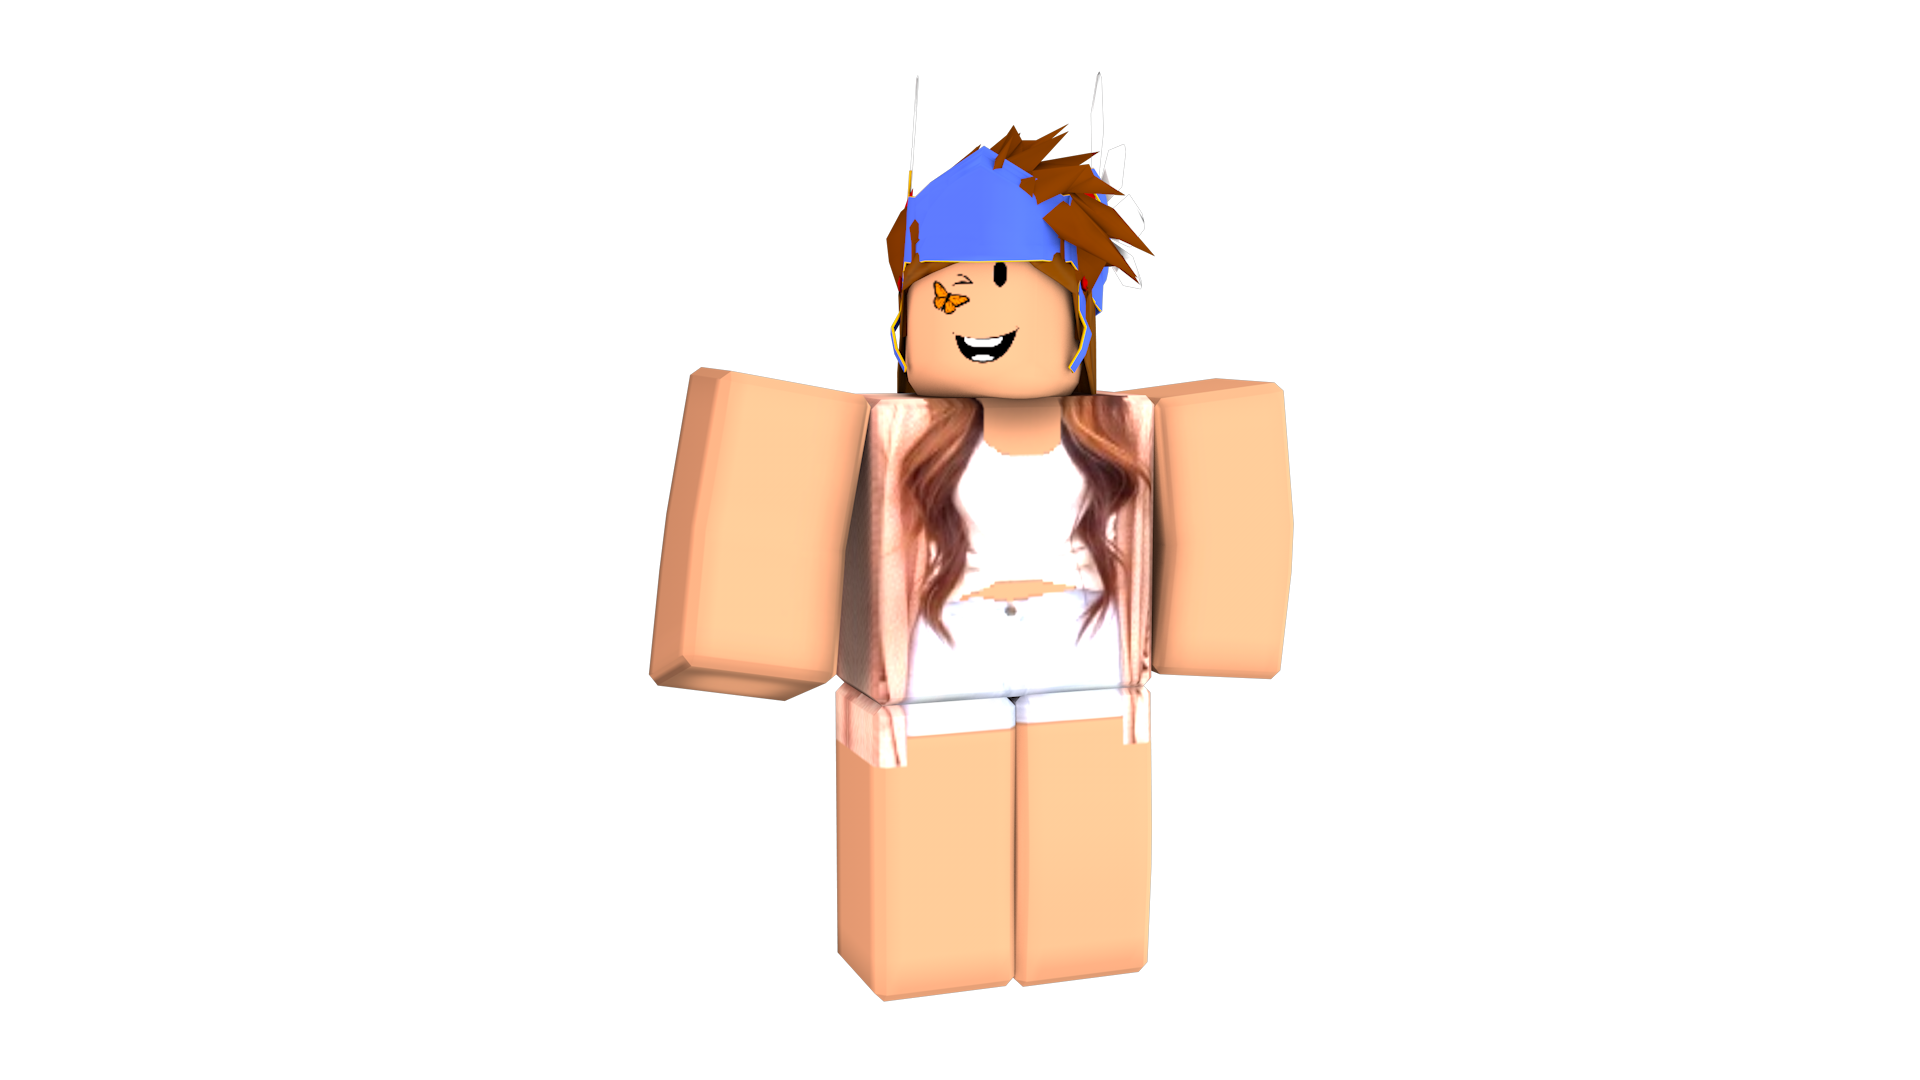 roblox character 2 fav youtubers 3 pinterest character